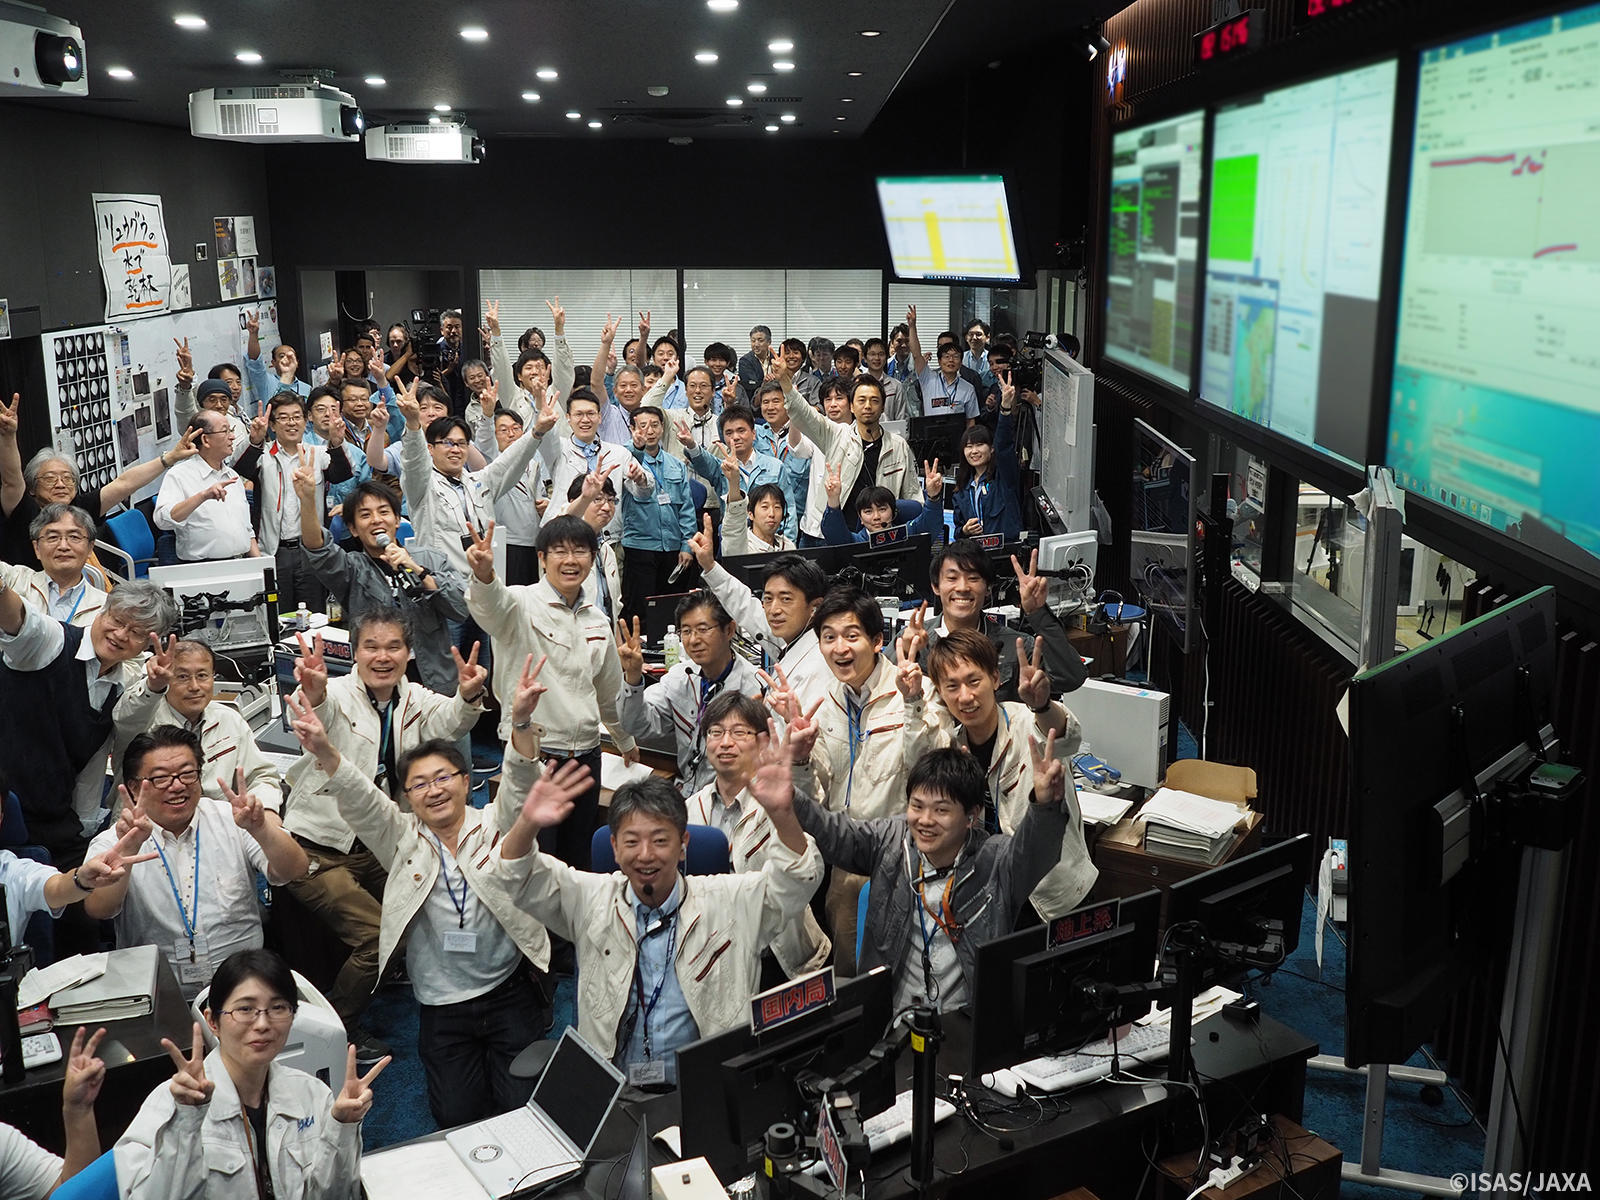 This mission was taken on by the combined efforts of staff at JAXA and the manufacturers. When the touchdown succeeded, the control room was filled with applause. The group photo taken immediately afterward shows everyone's expressions filled with both joy and relief.